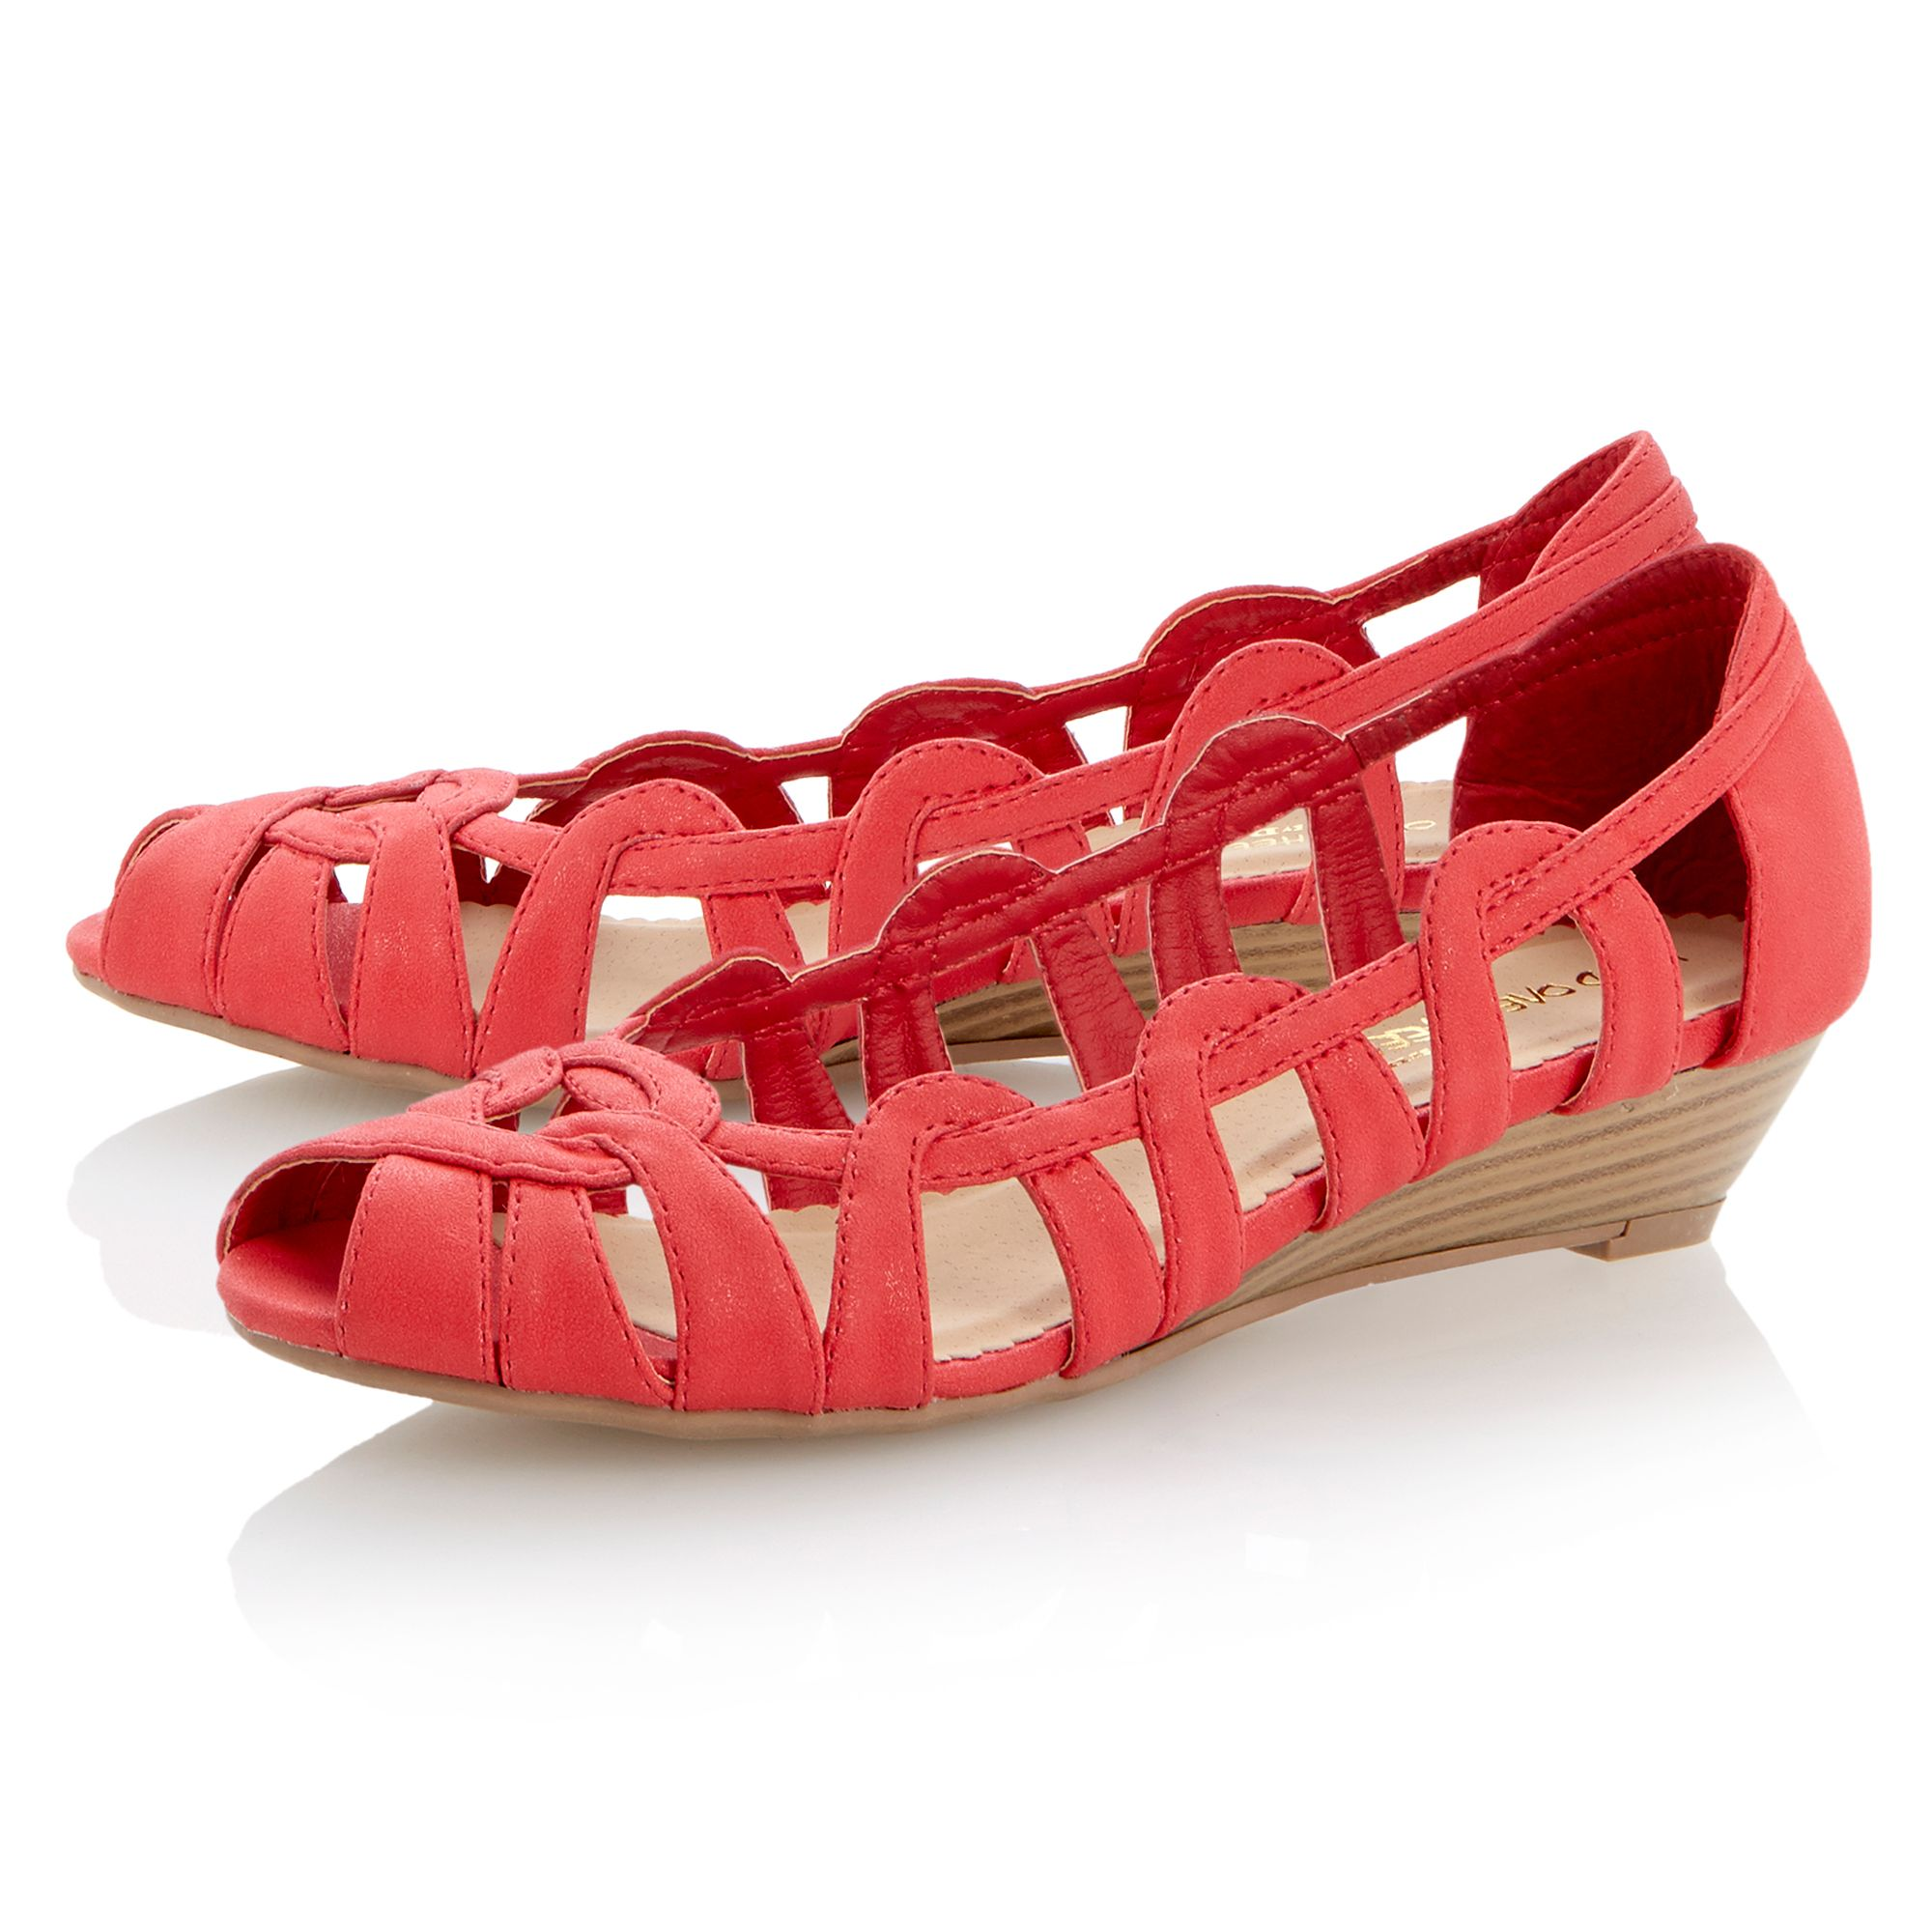 Moxy peeptoe mini wedge ballerina shoes